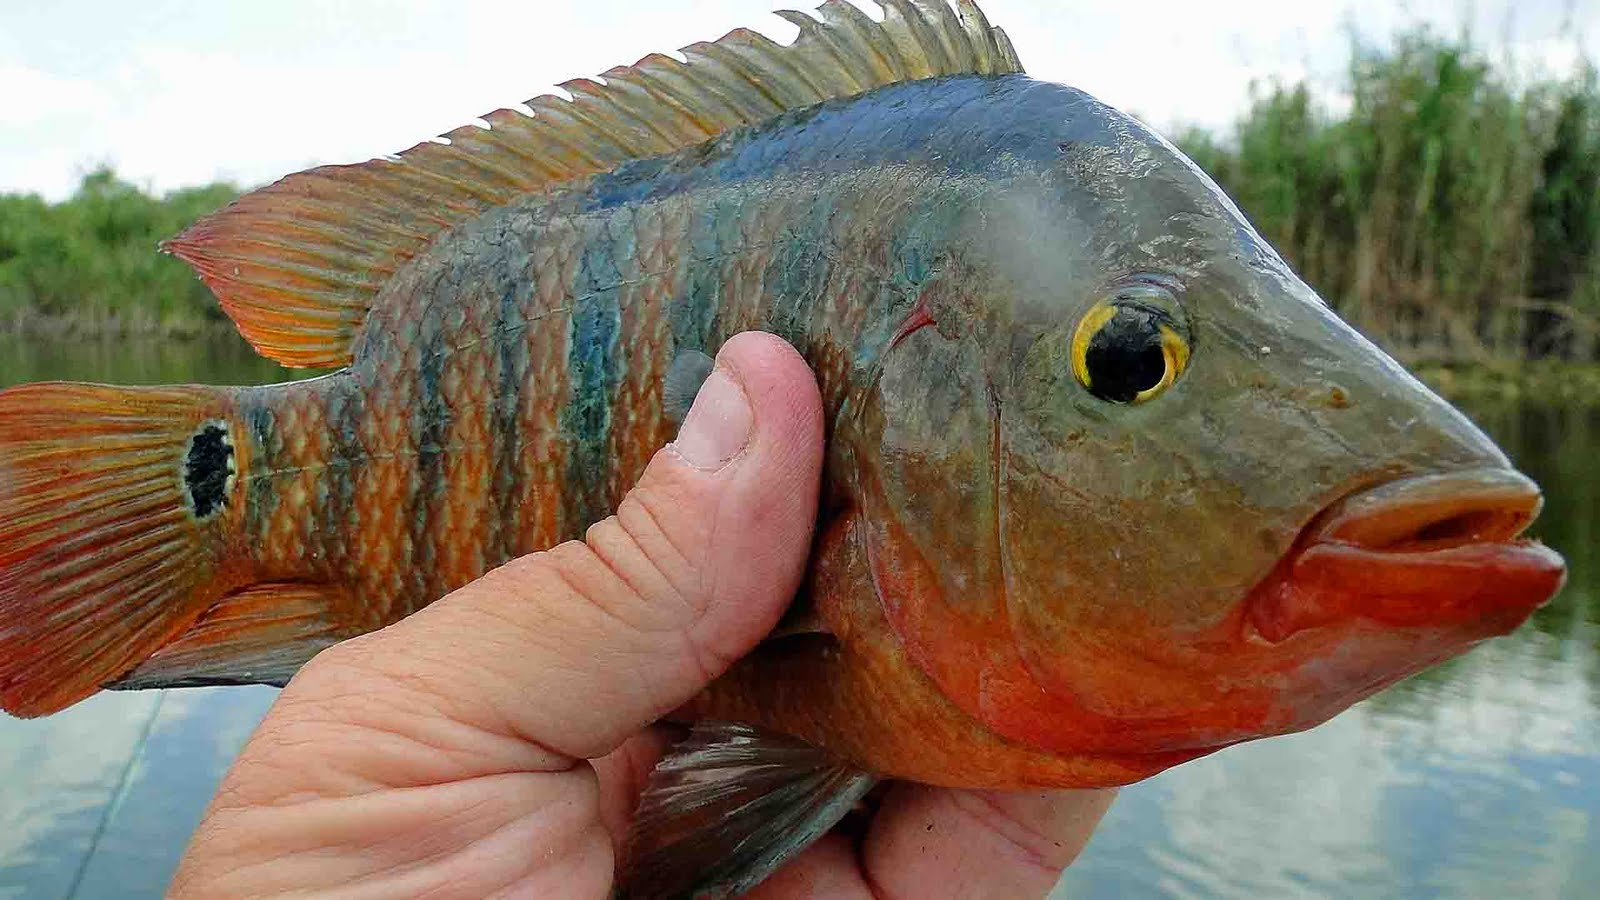 There still are a few Mayan cichlid left in The Everglades.